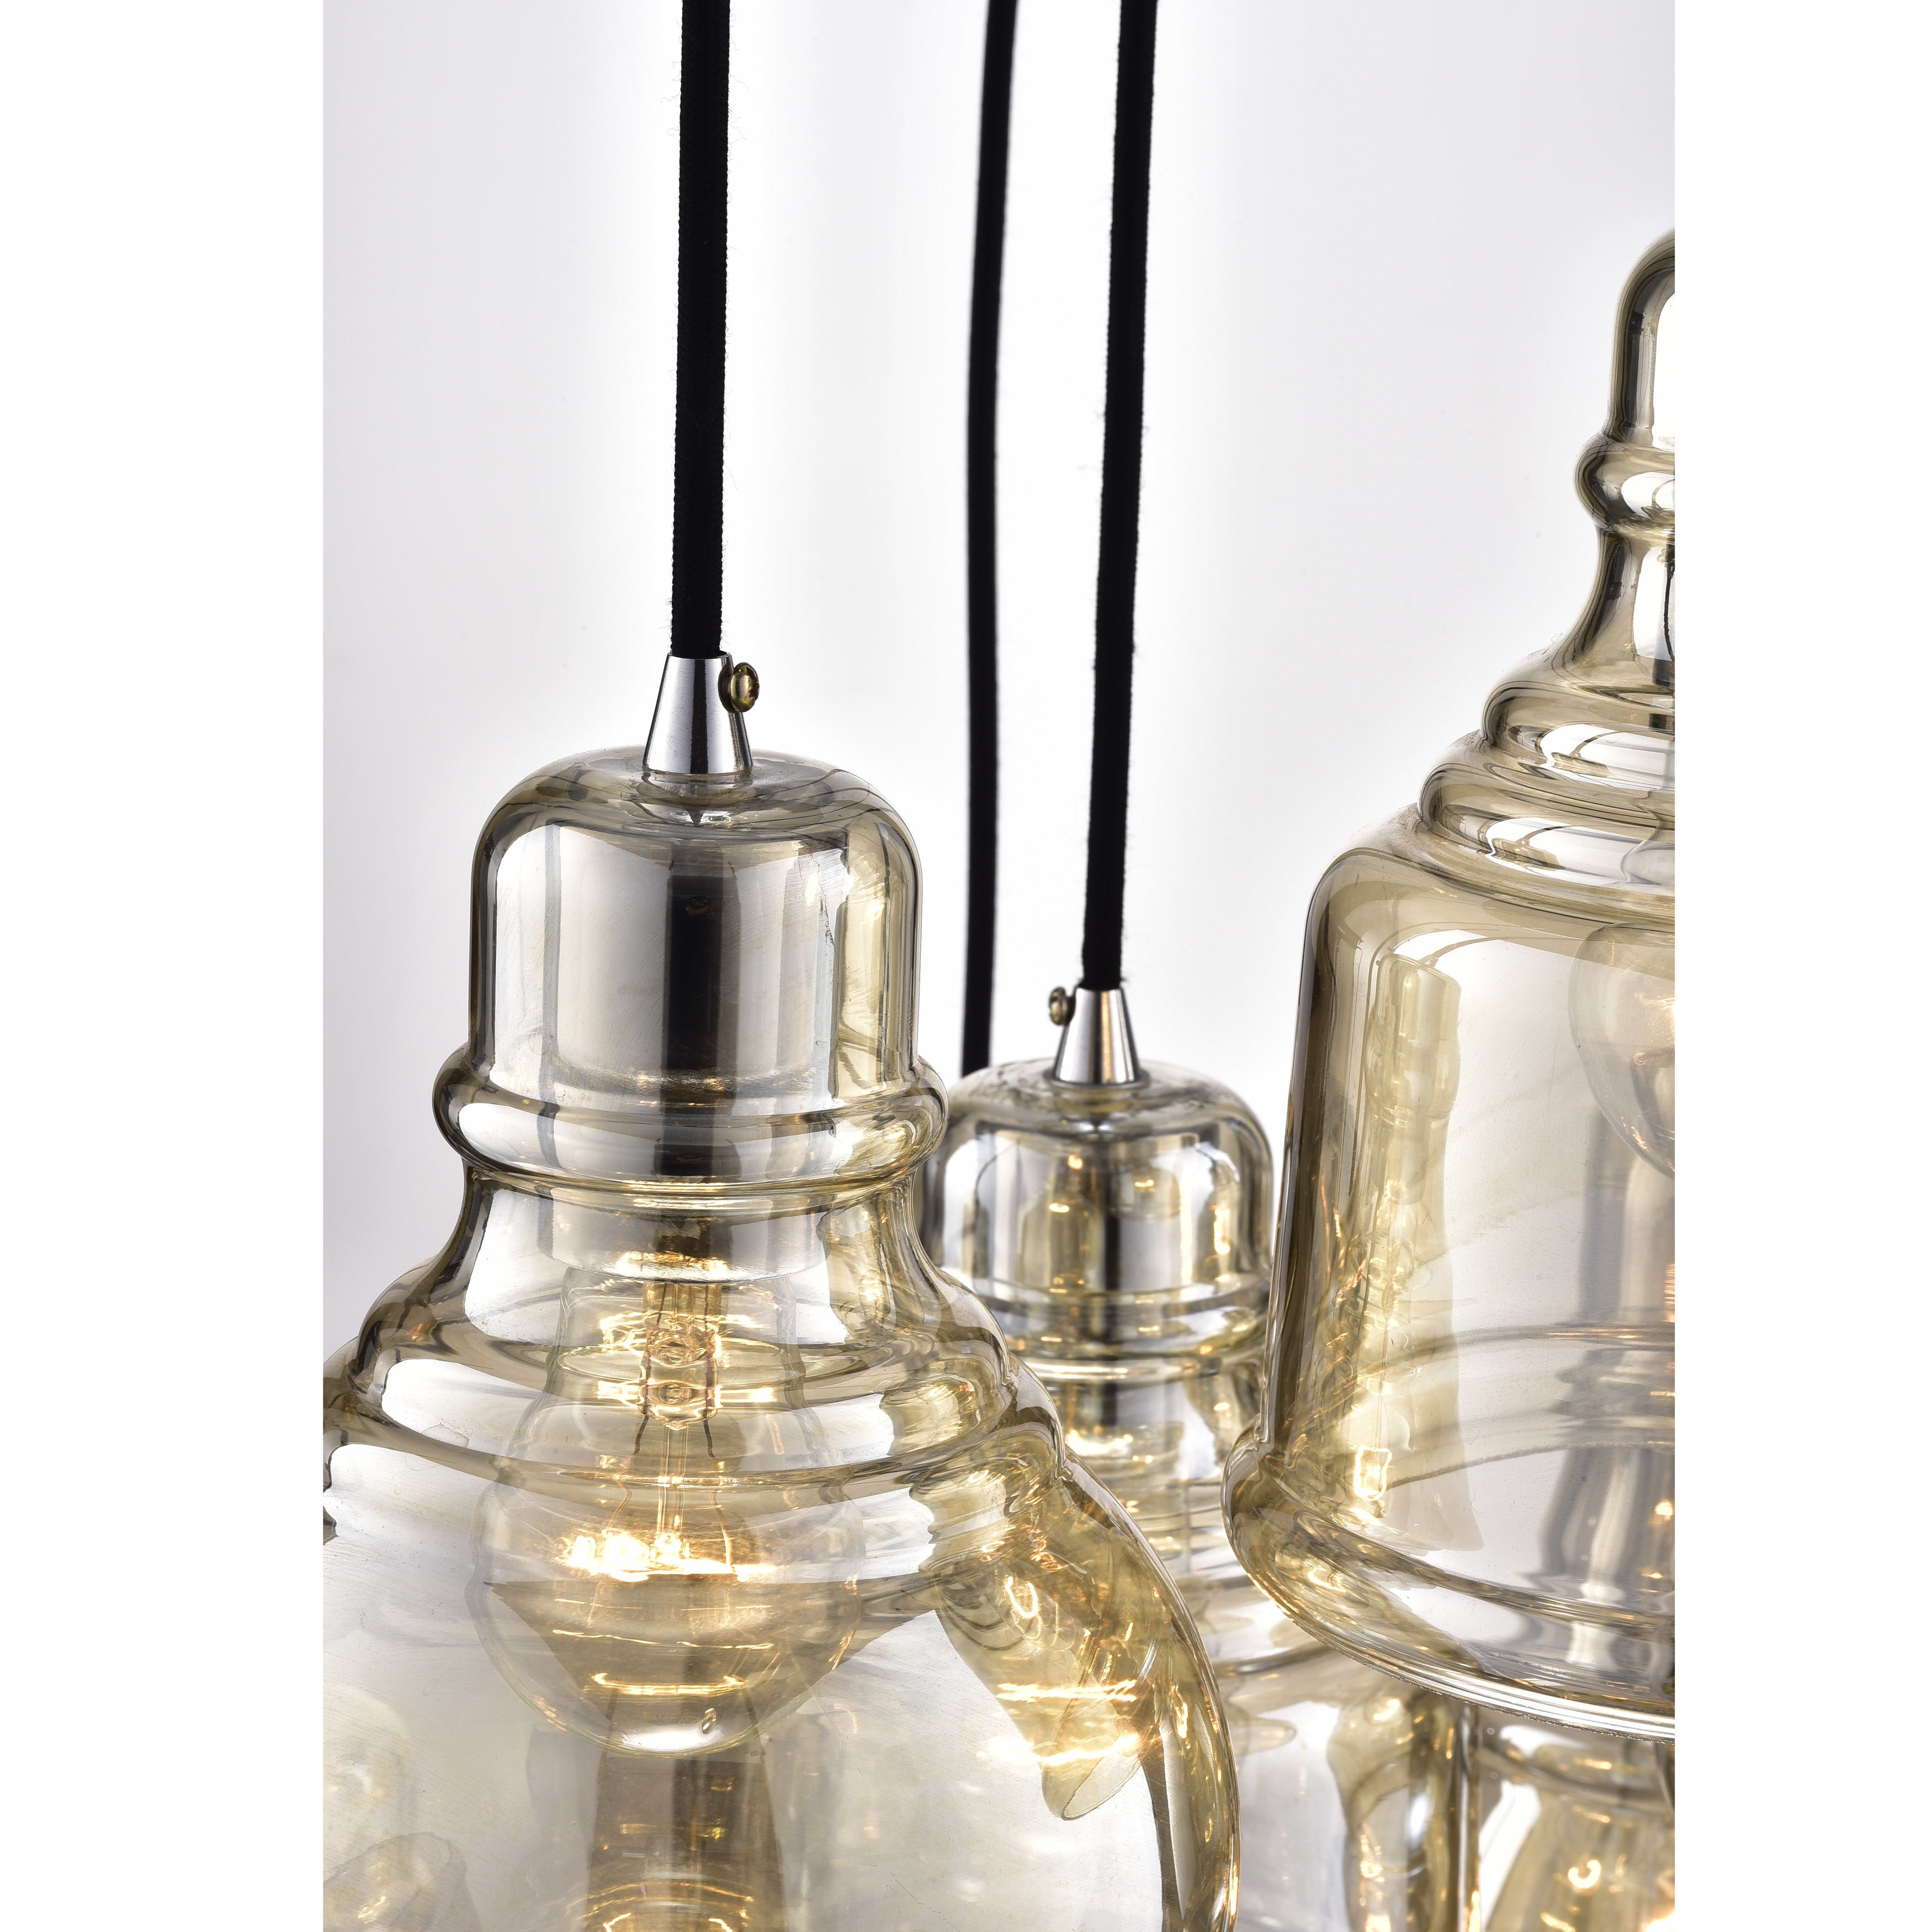 Mariana 8 Light Cognac Glass Cluster Pendant Chandelier With Chrome Finish And Round Base Within Pruett Cognac Glass 8 Light Cluster Pendants (View 16 of 30)